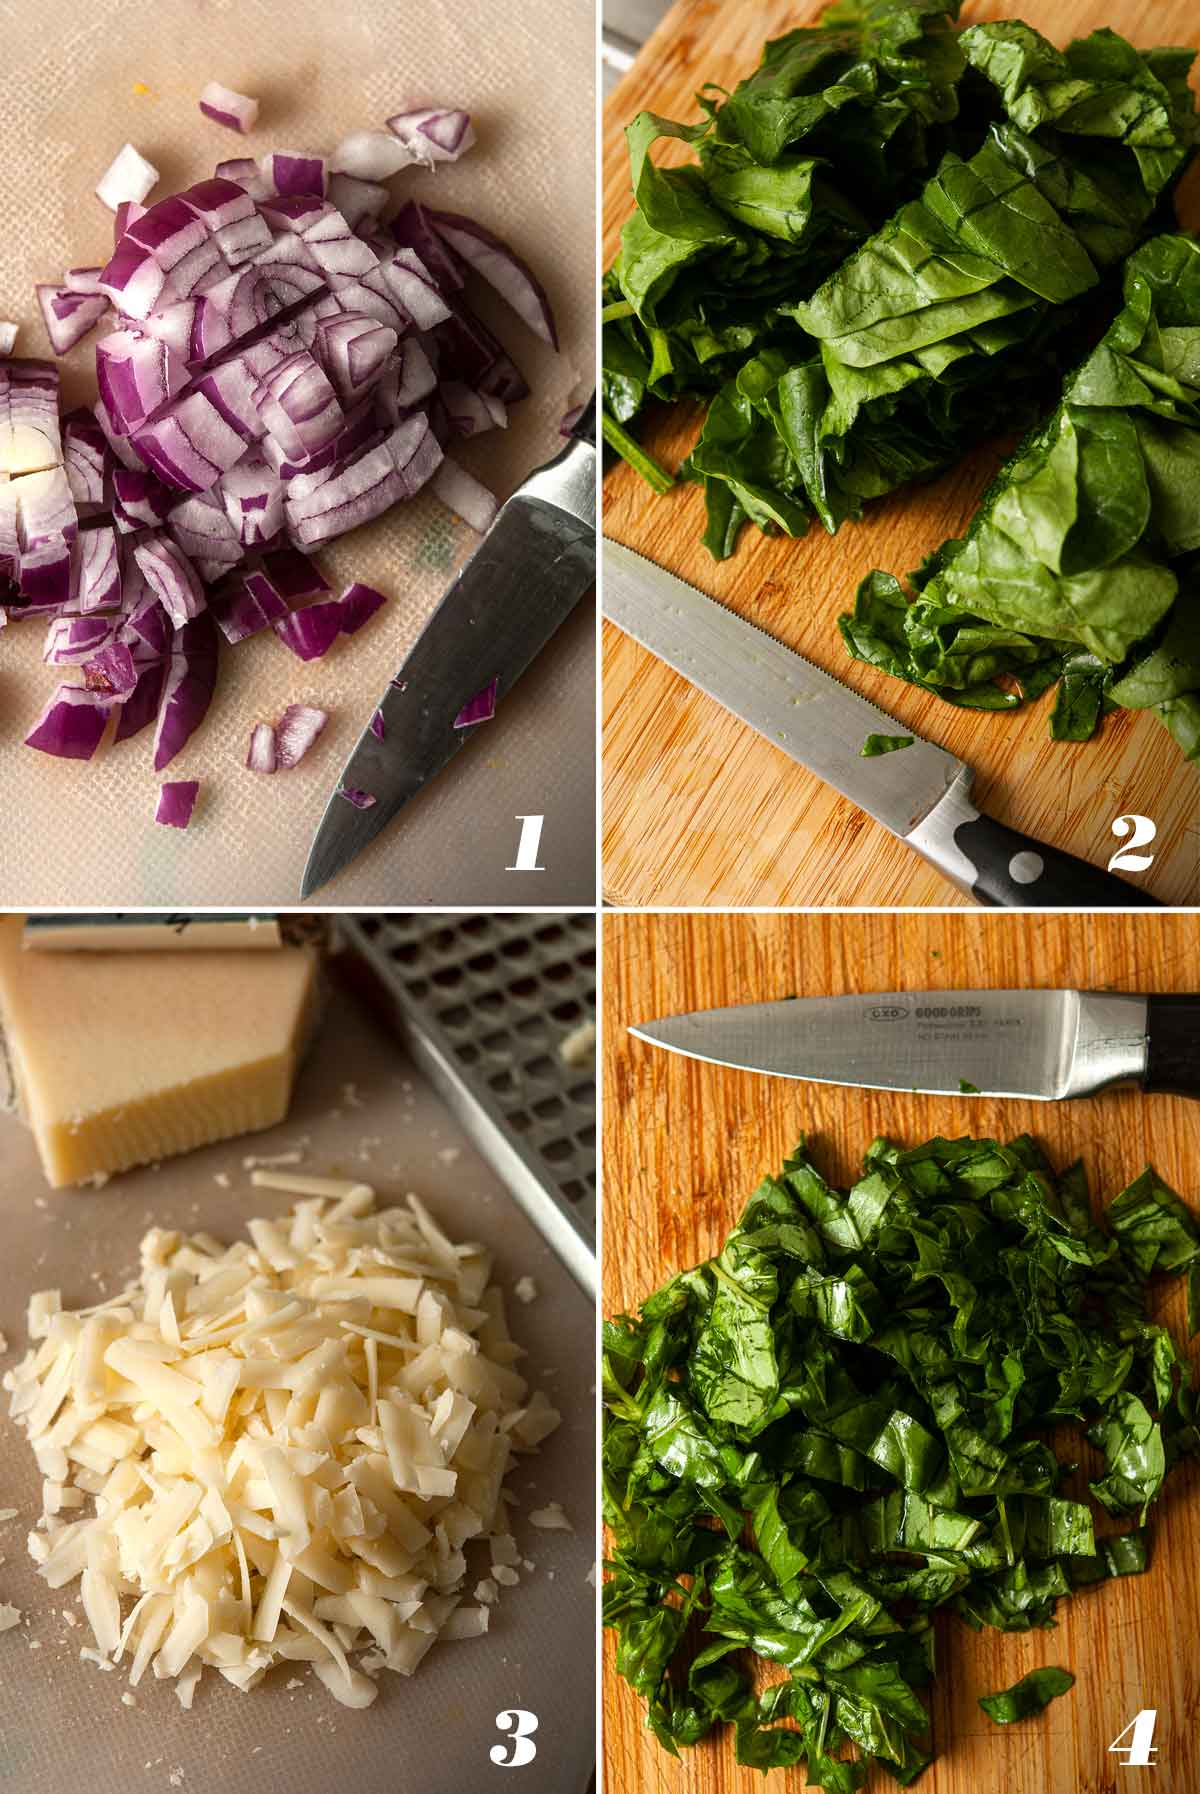 A collage of 4 numbered images showing how to prepare ingredients.